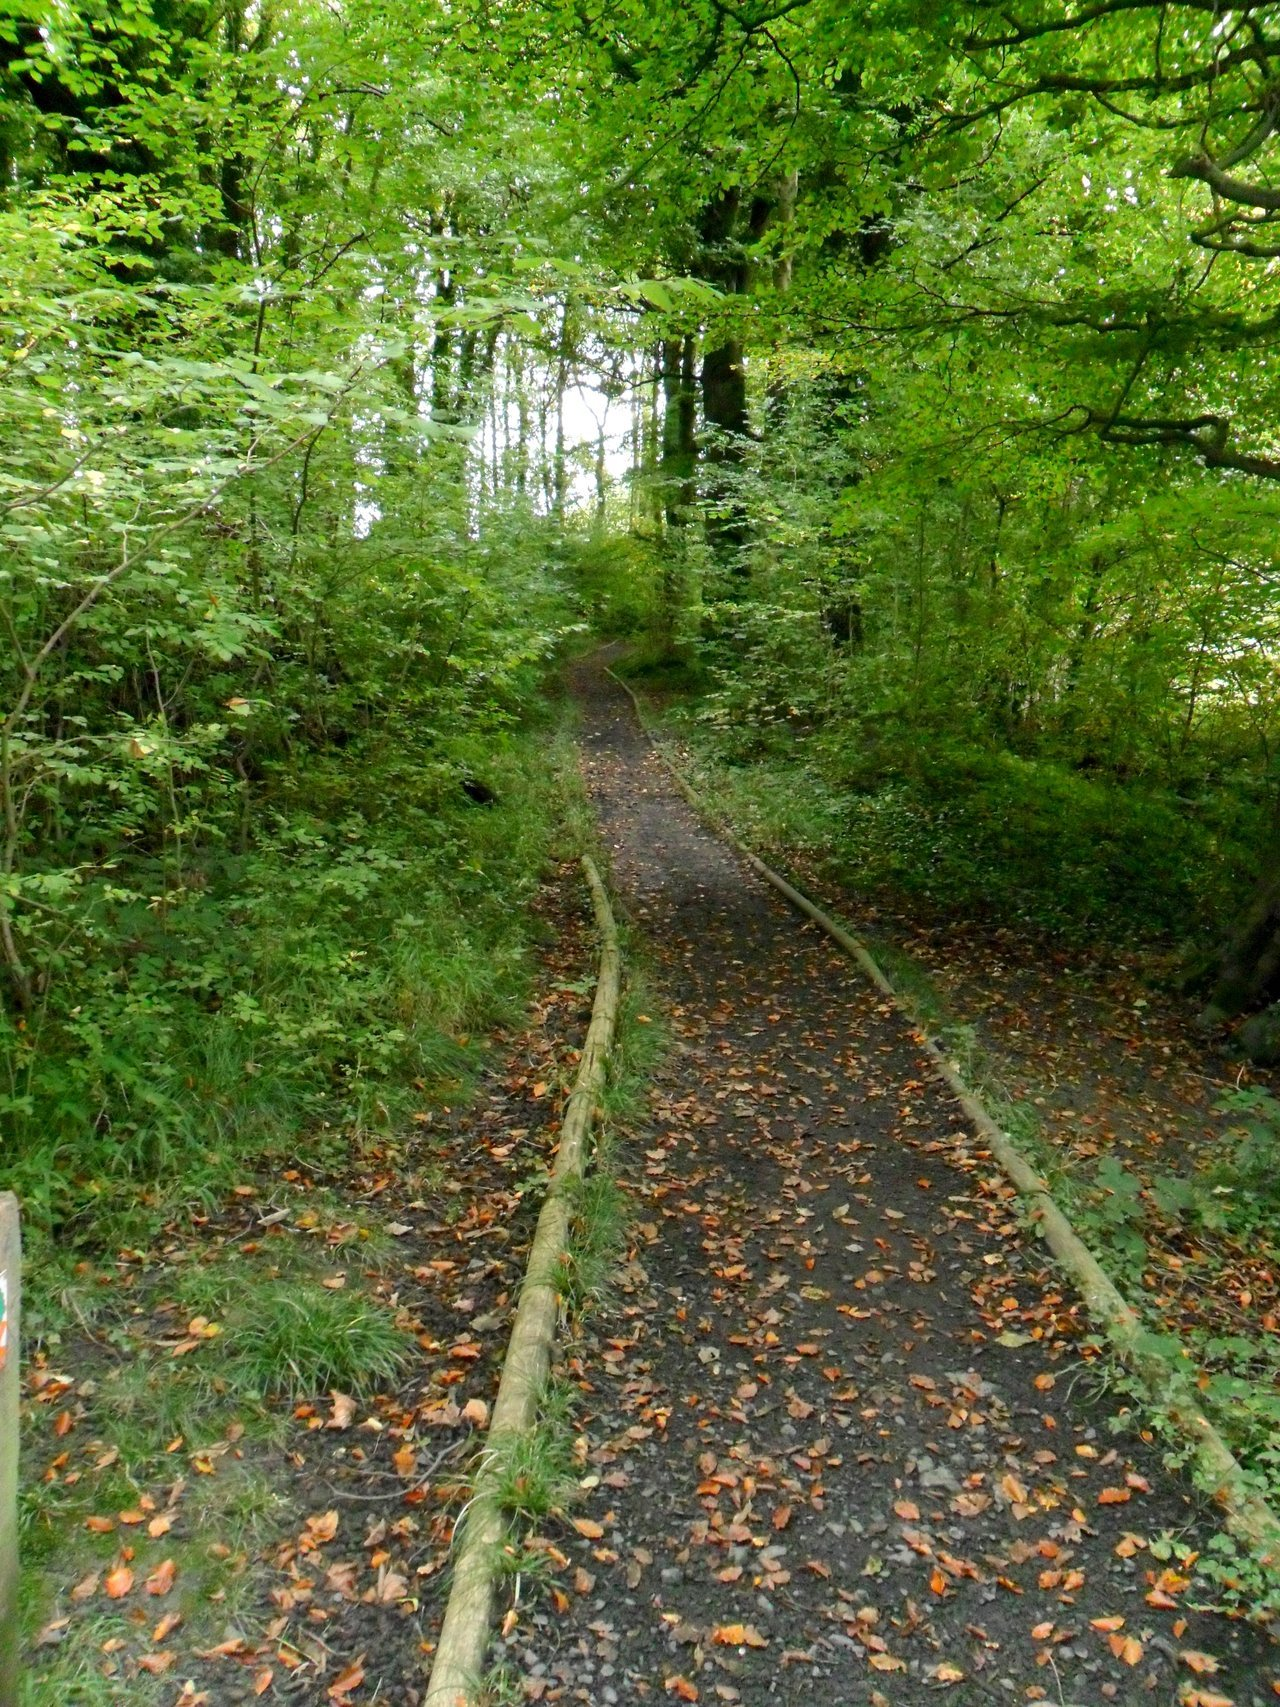 Footpath in The Dingle woods, Aldridge, Walsall, England.